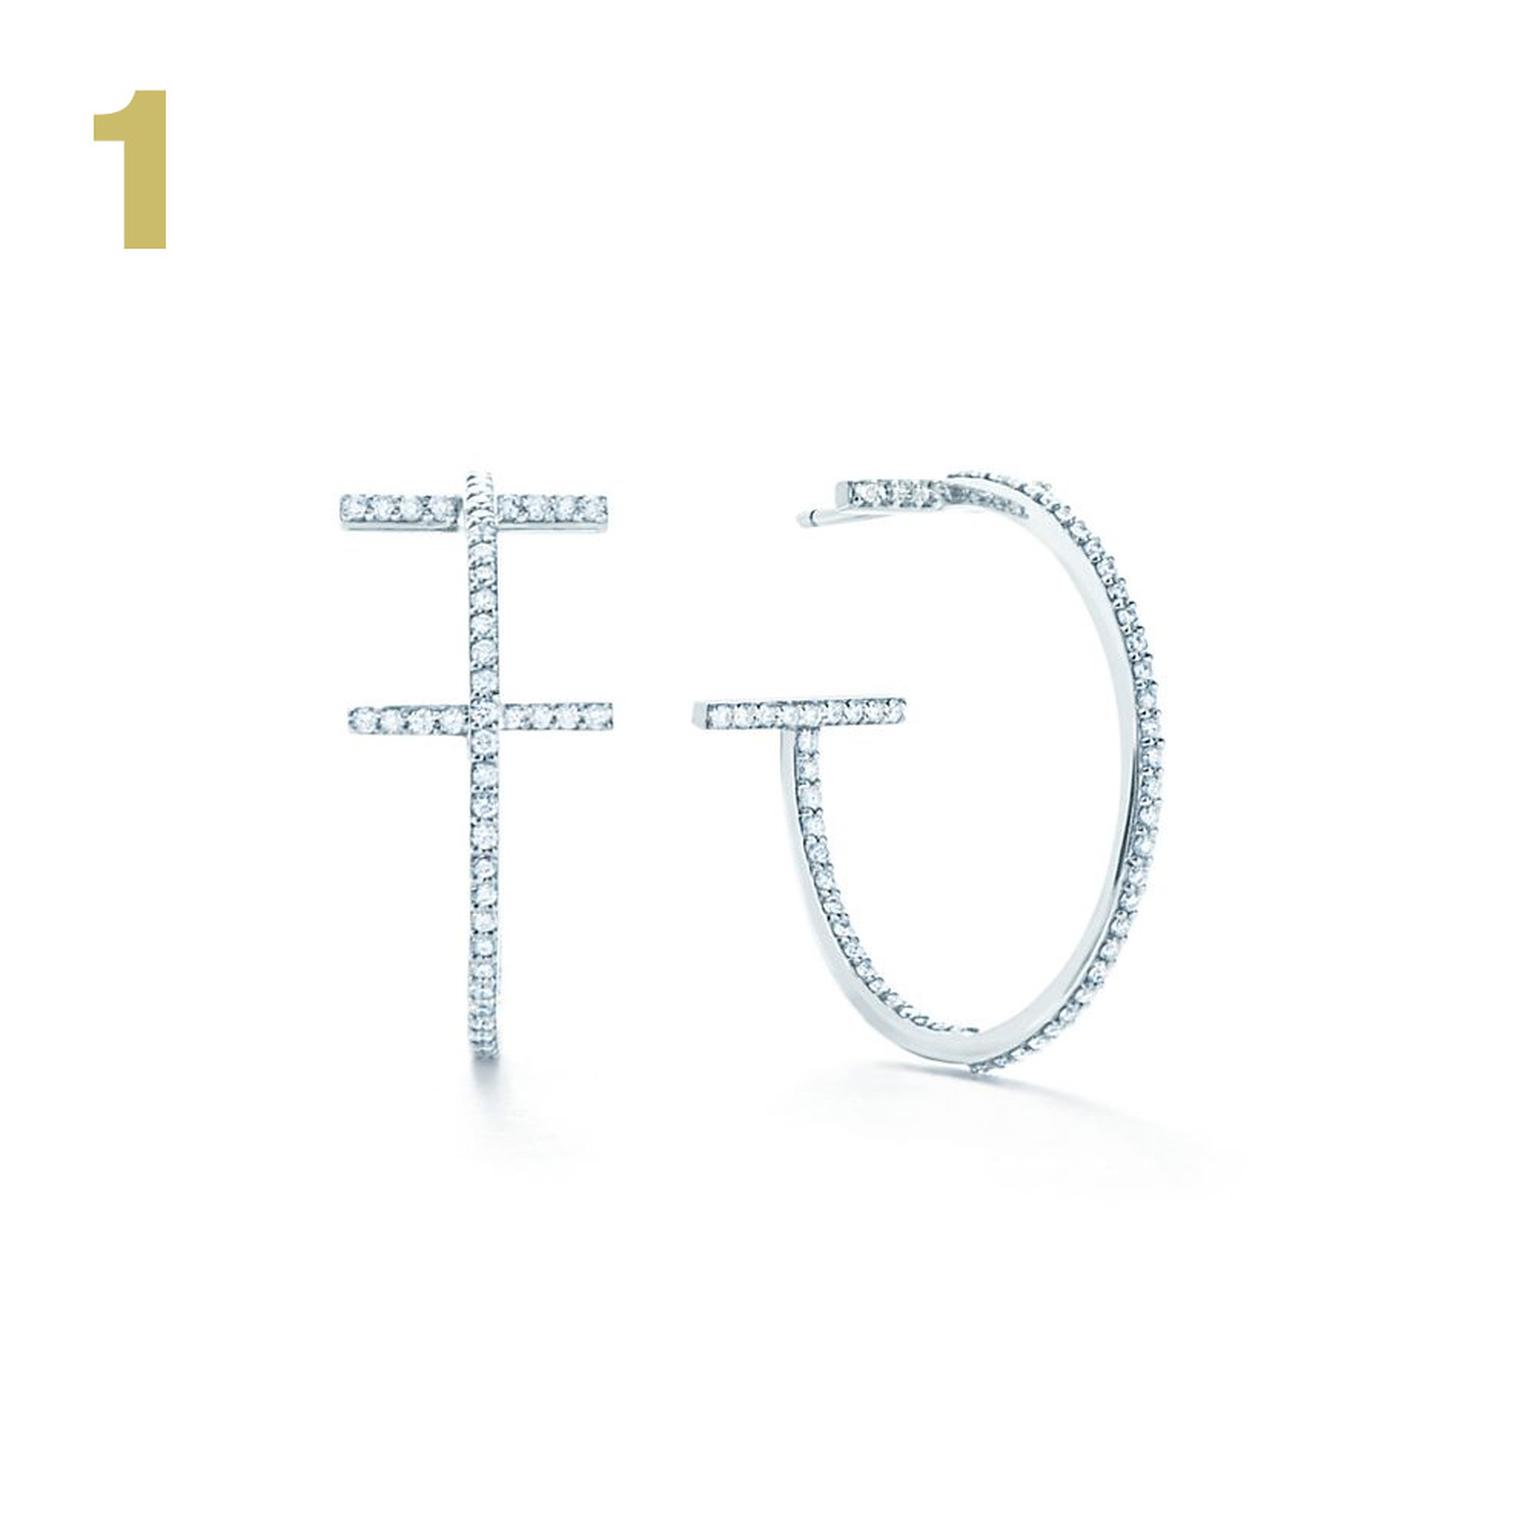 Tiffany T white gold and diamond hoop earrings